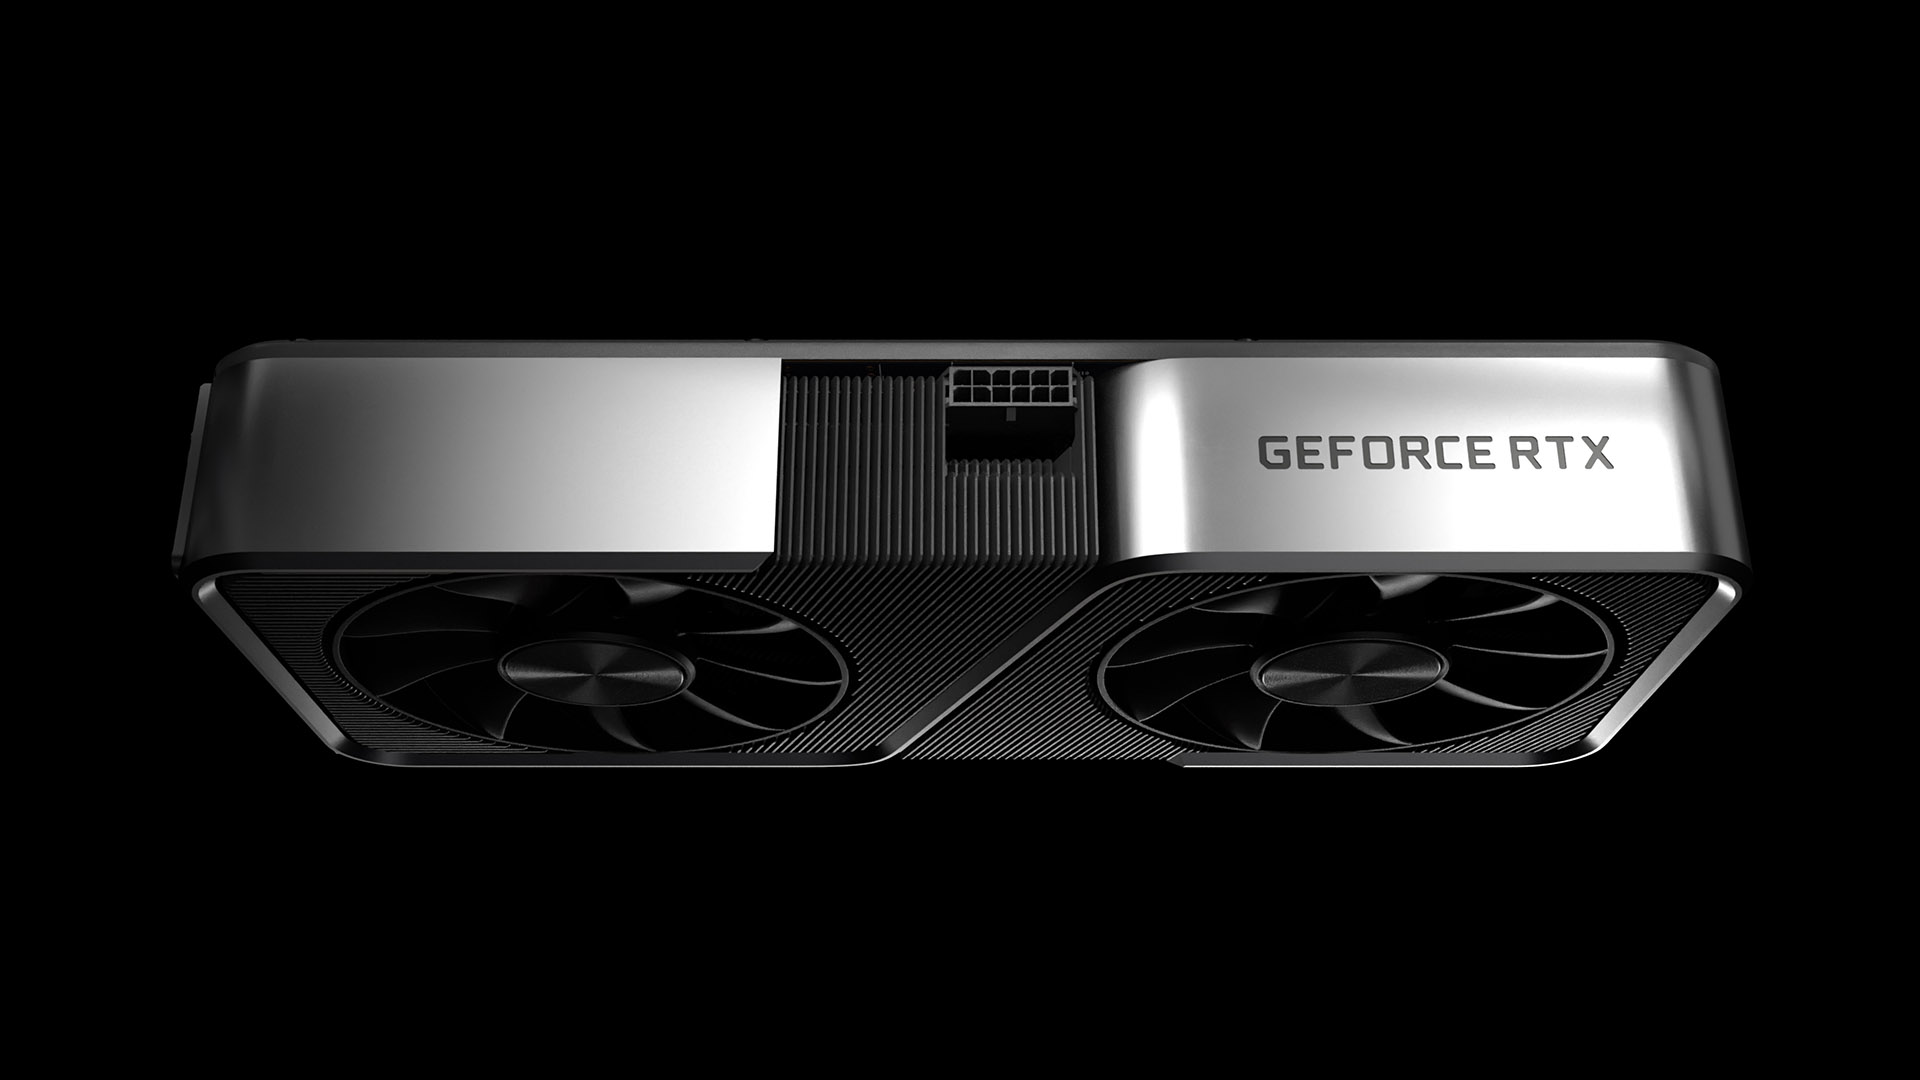 Nvidia's rumoured RTX 3080 Ti could also be programmed to deter cryptominers